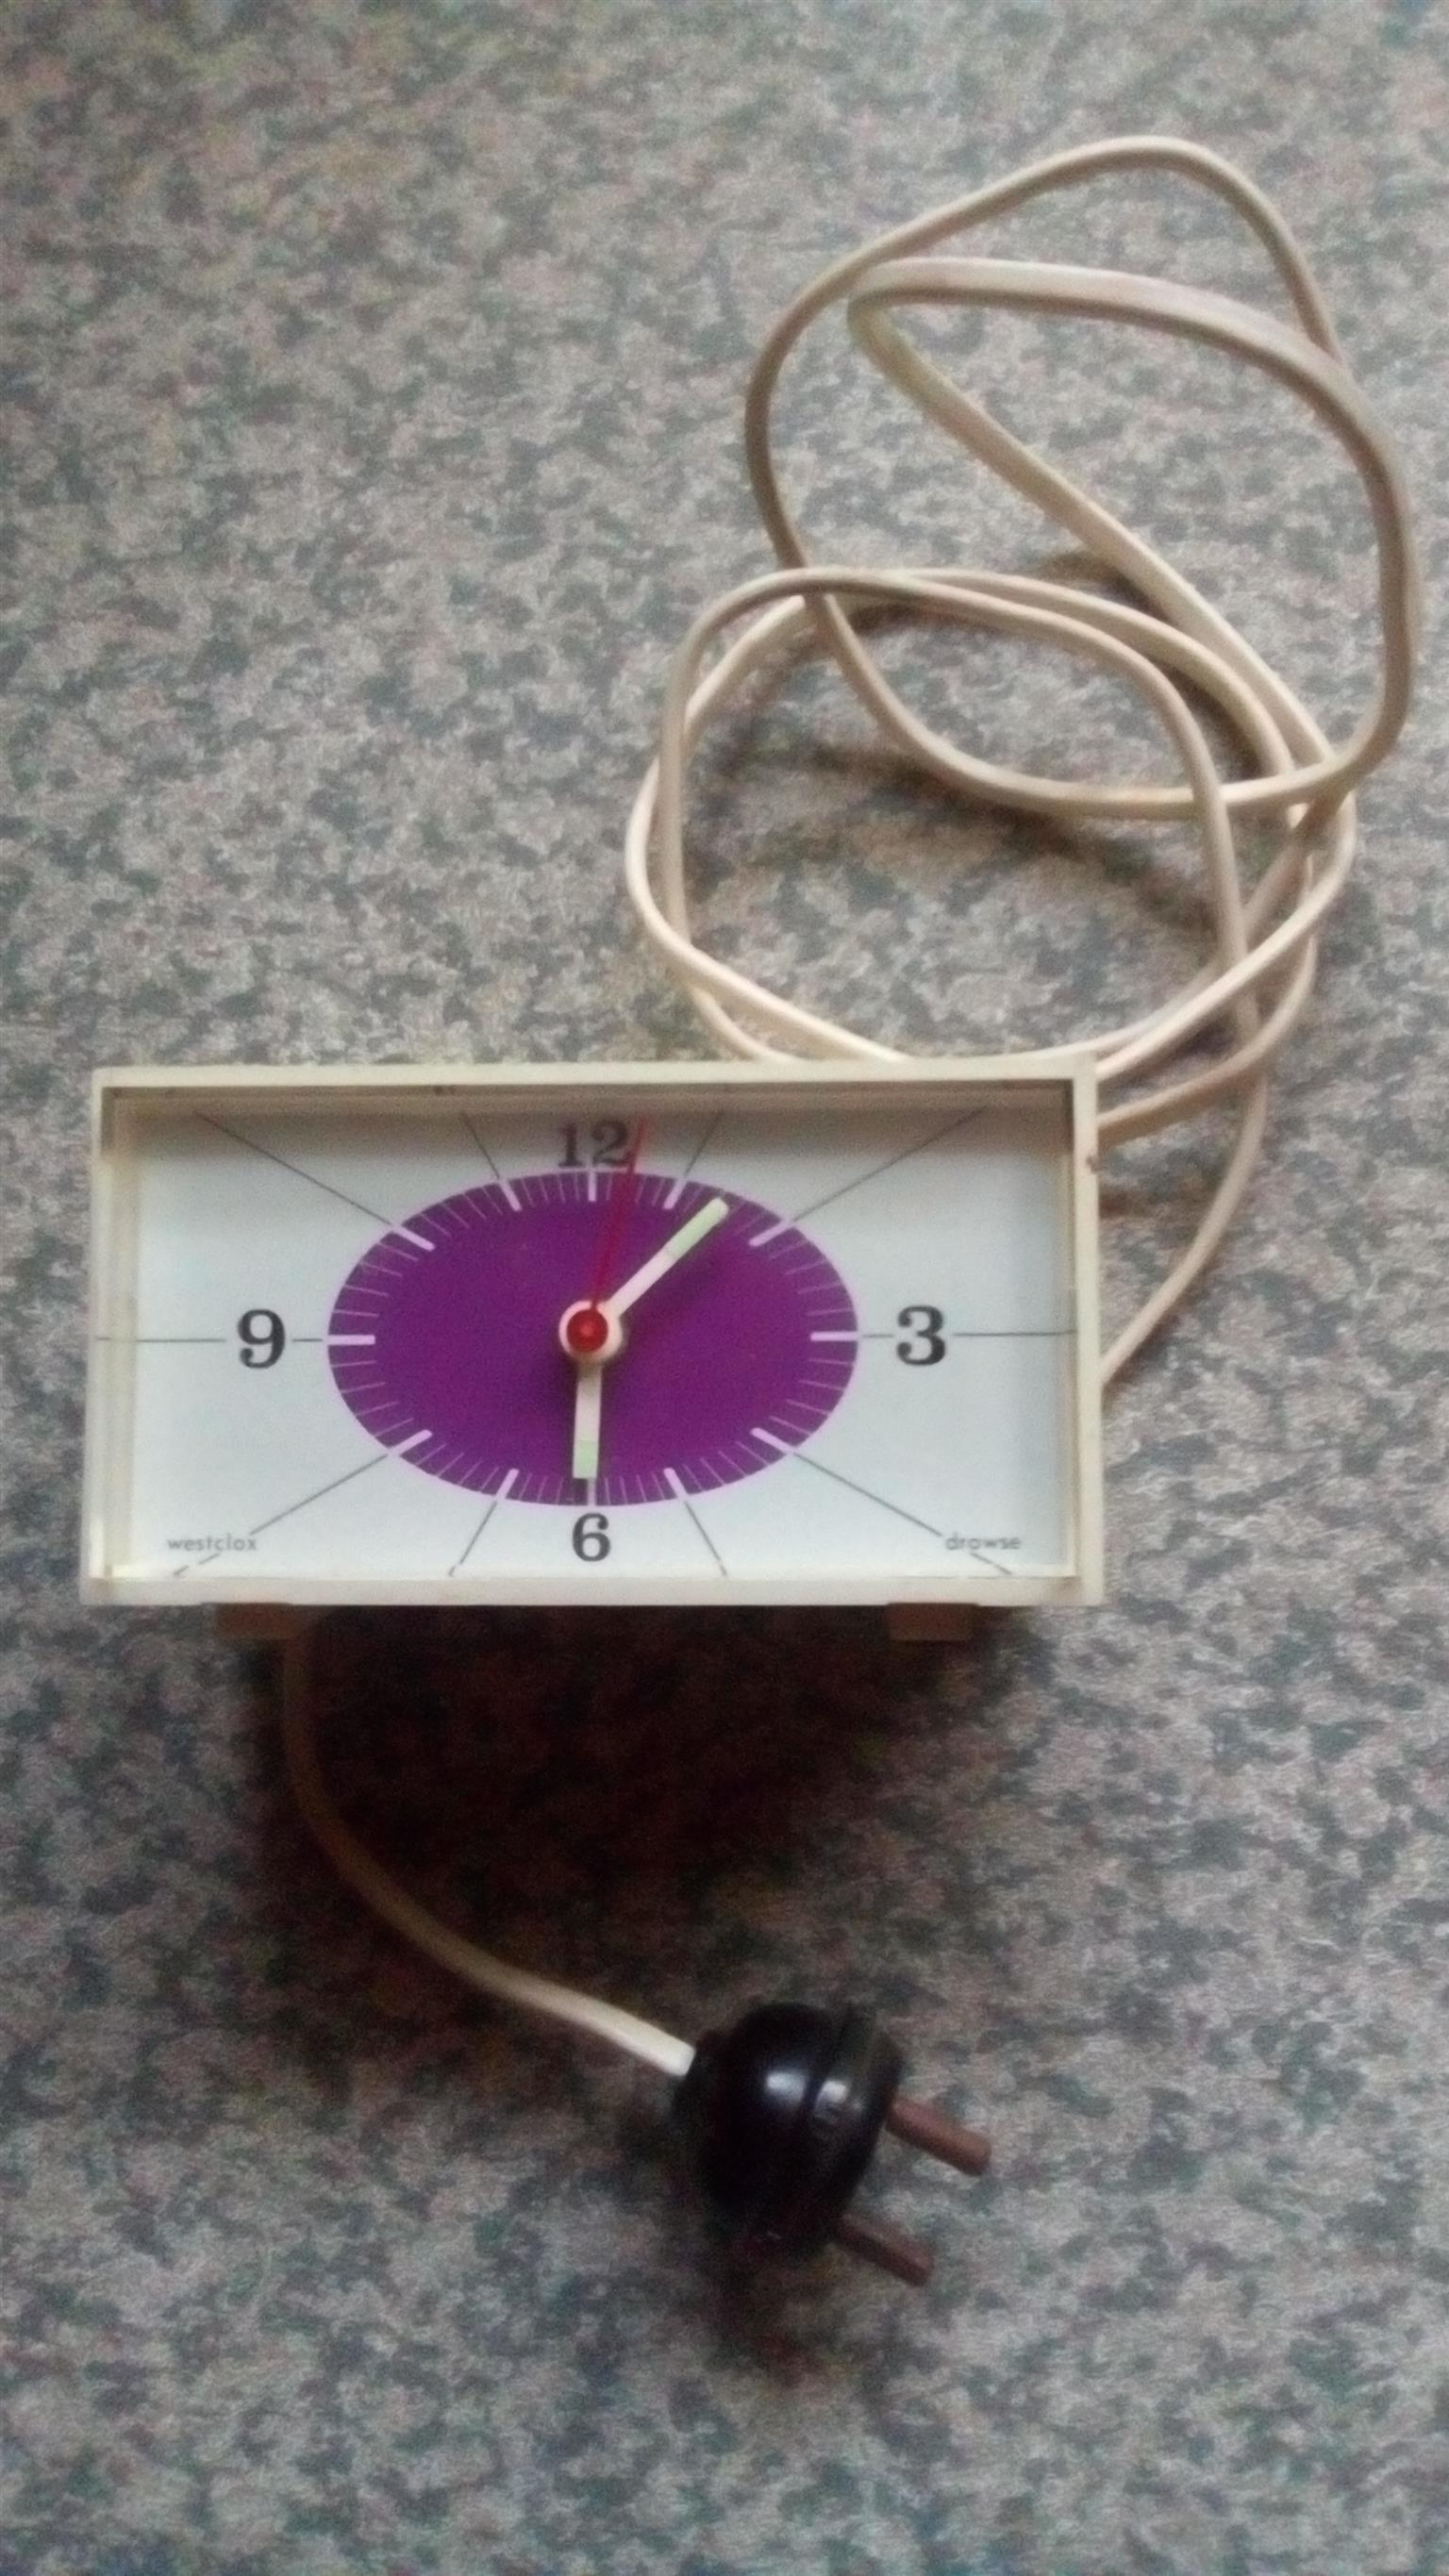 Electronic clock and alarm